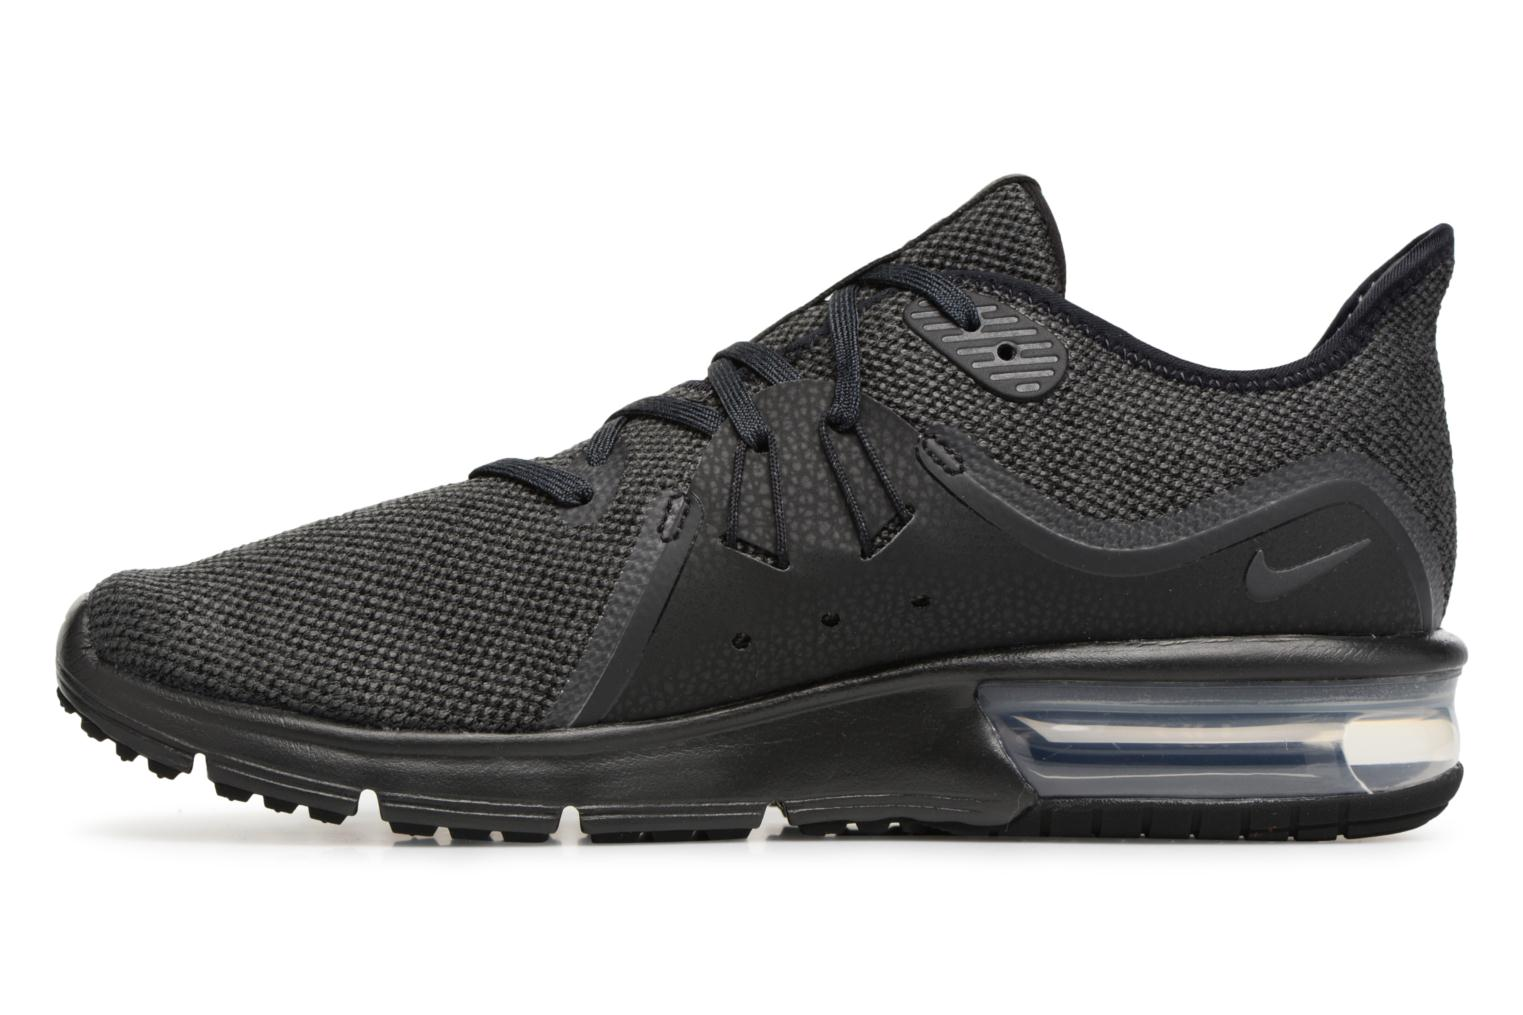 Nike Air Max Sequent 3 Black/anthracite